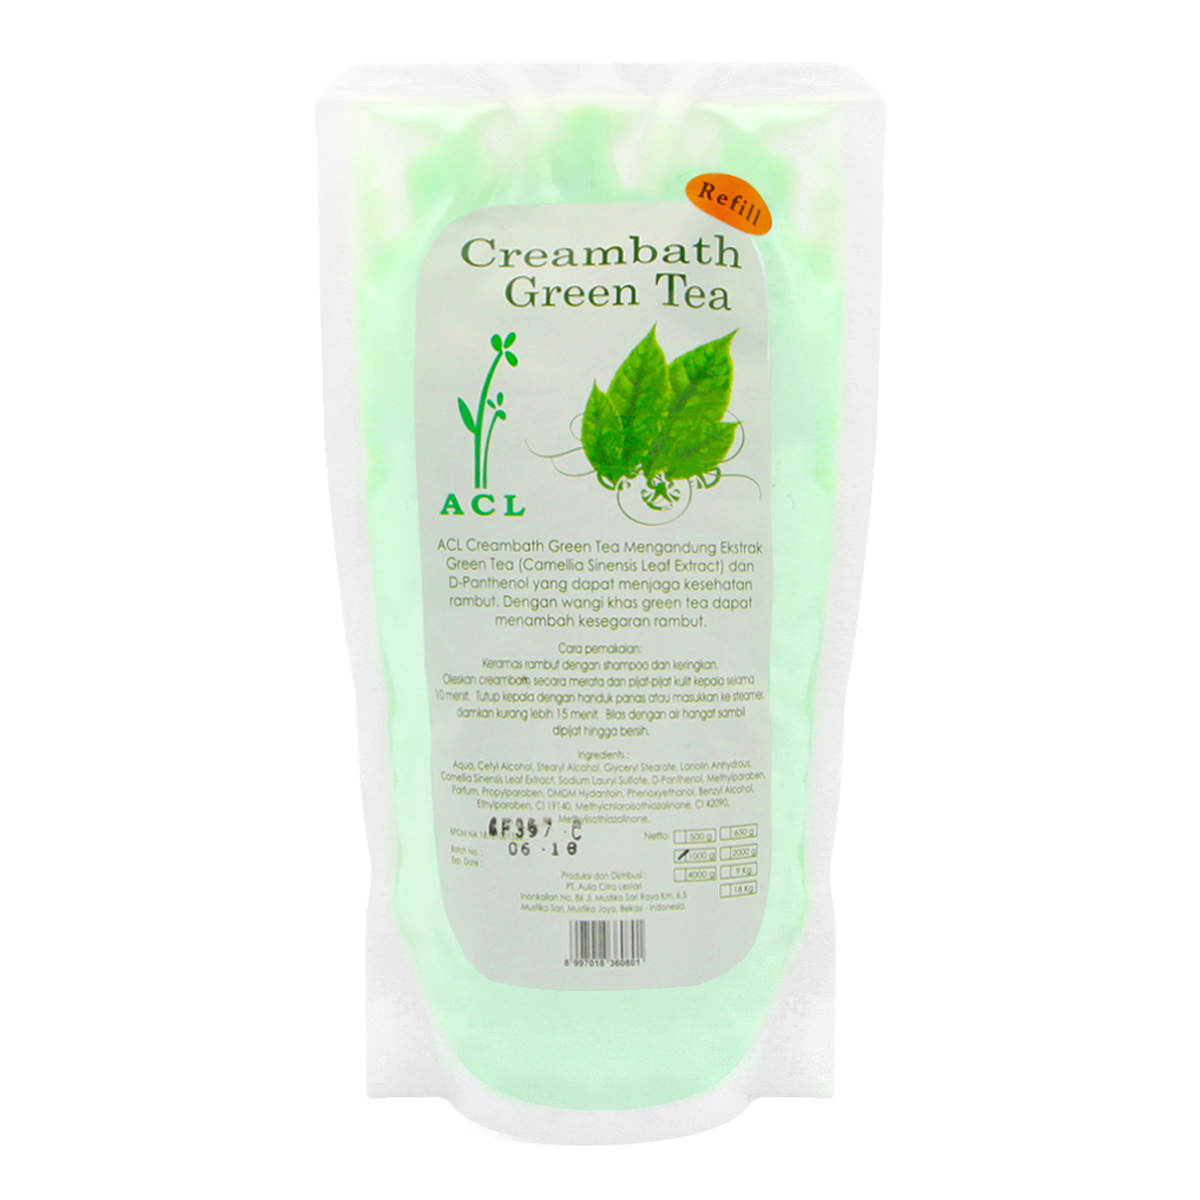 ACL-Creambath-Green-Tea-Refill-(1000-g)-edited-sfw(2)